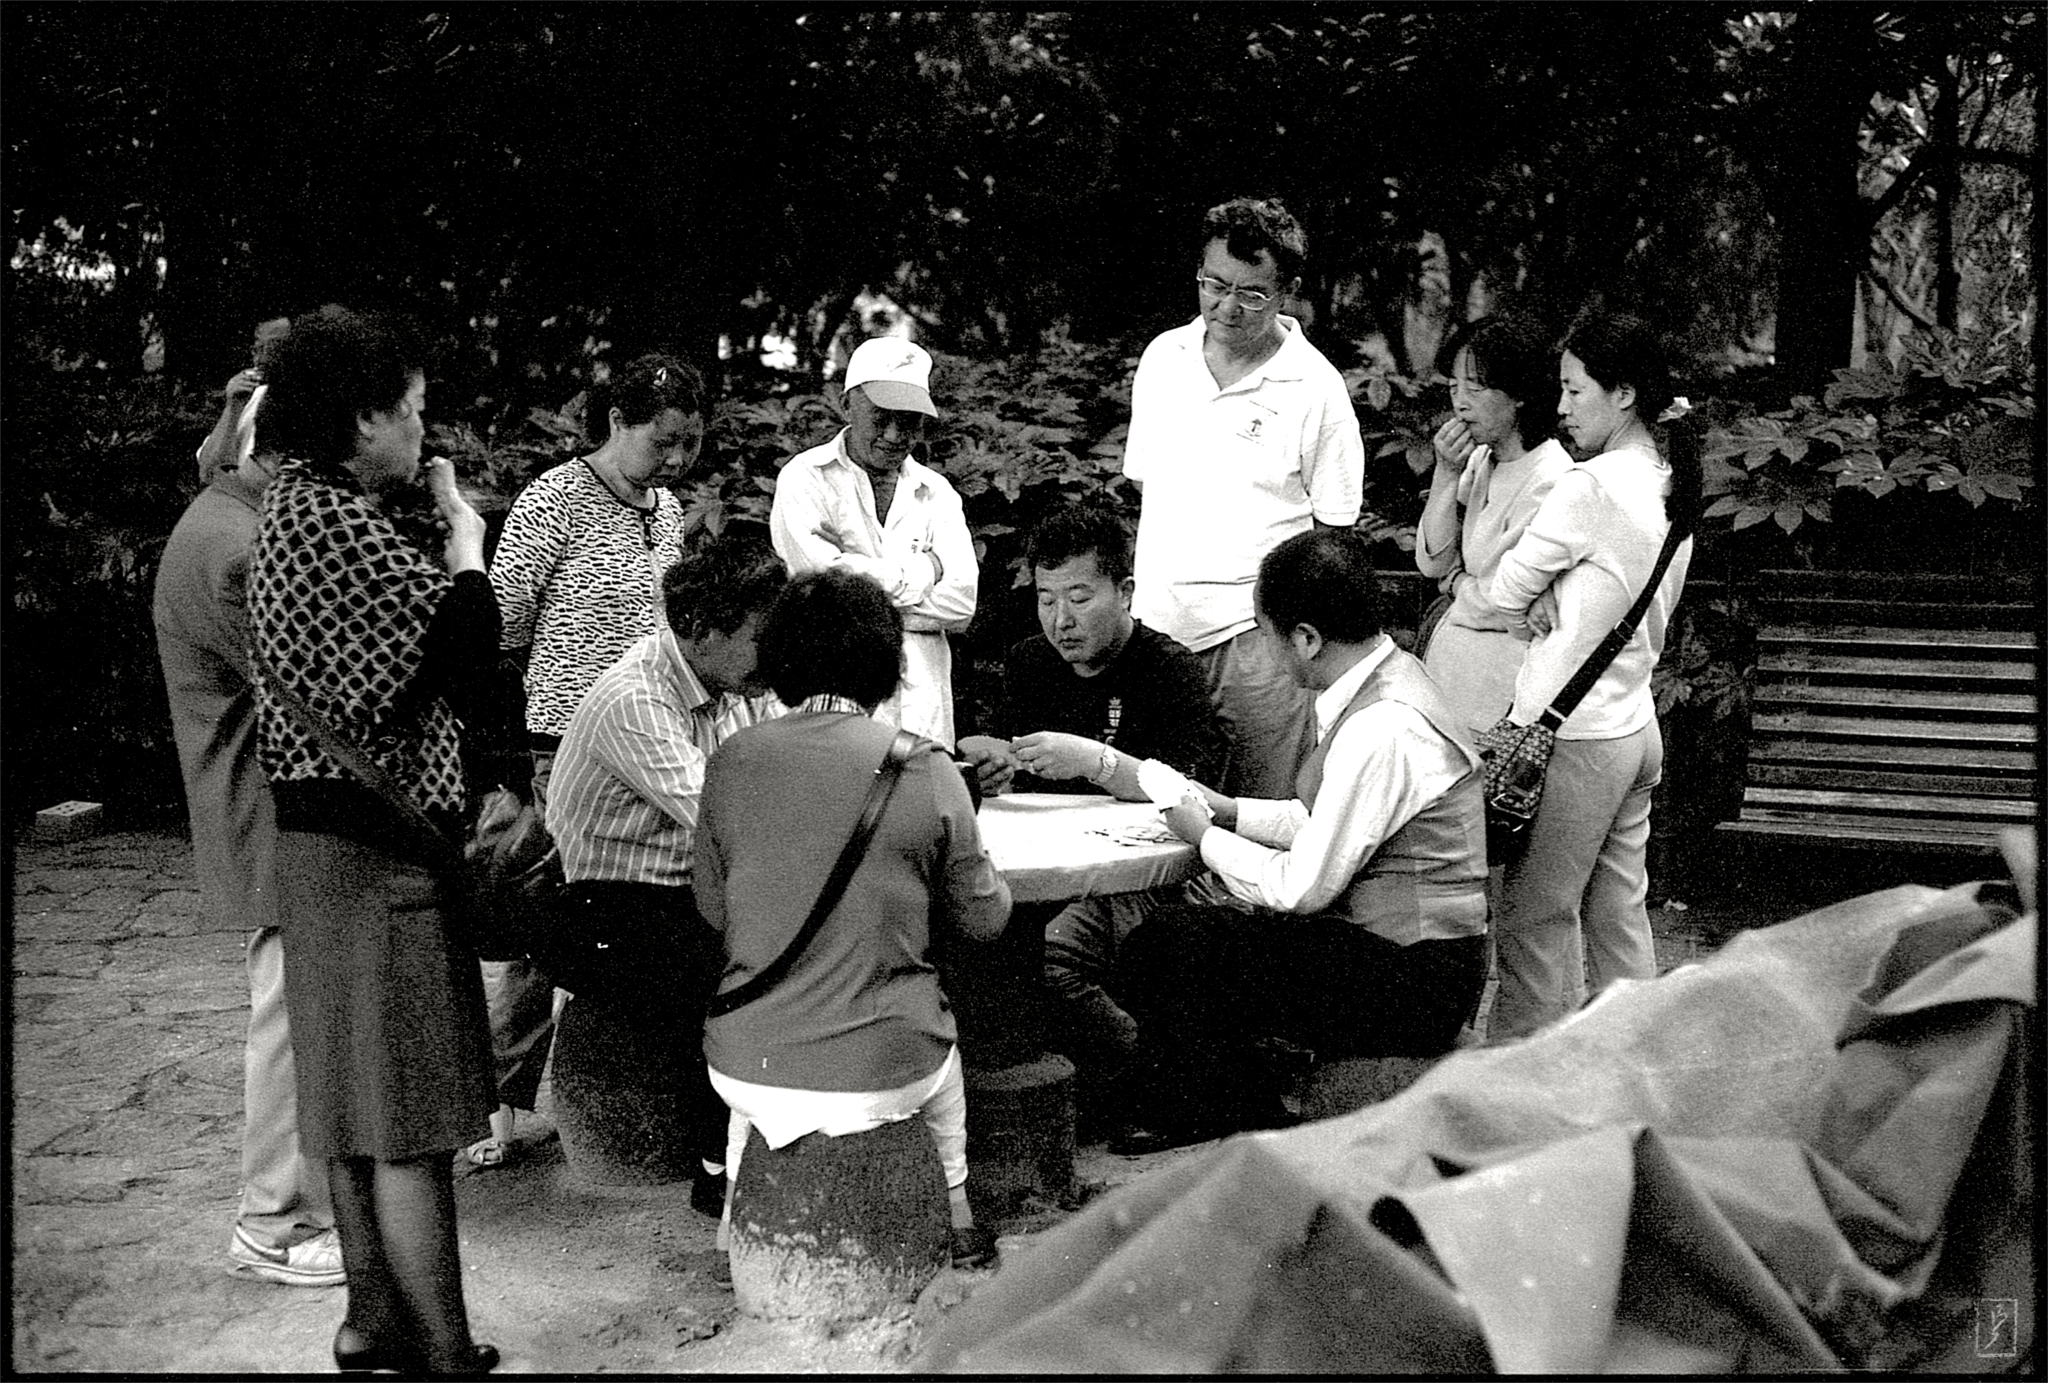 Lu Xun park (鲁迅公园): People watching others play cards.